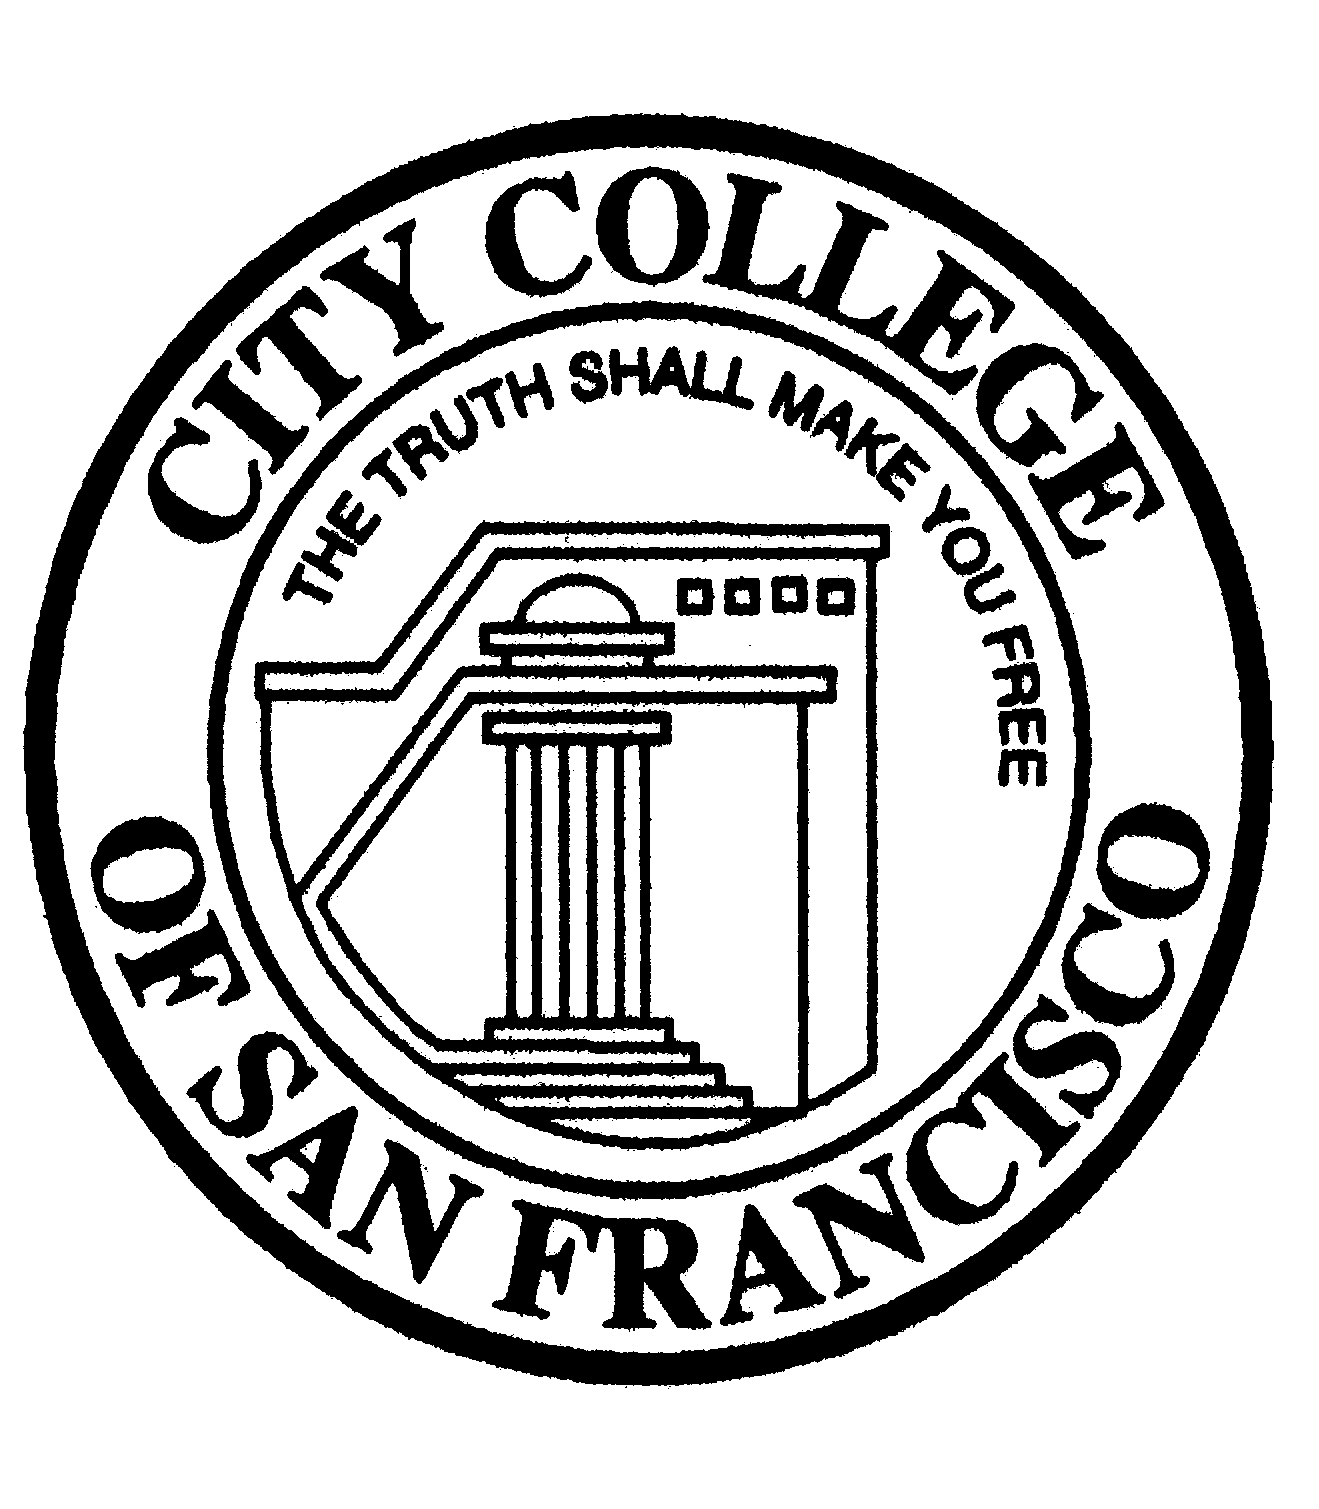 city college board of trustees.png